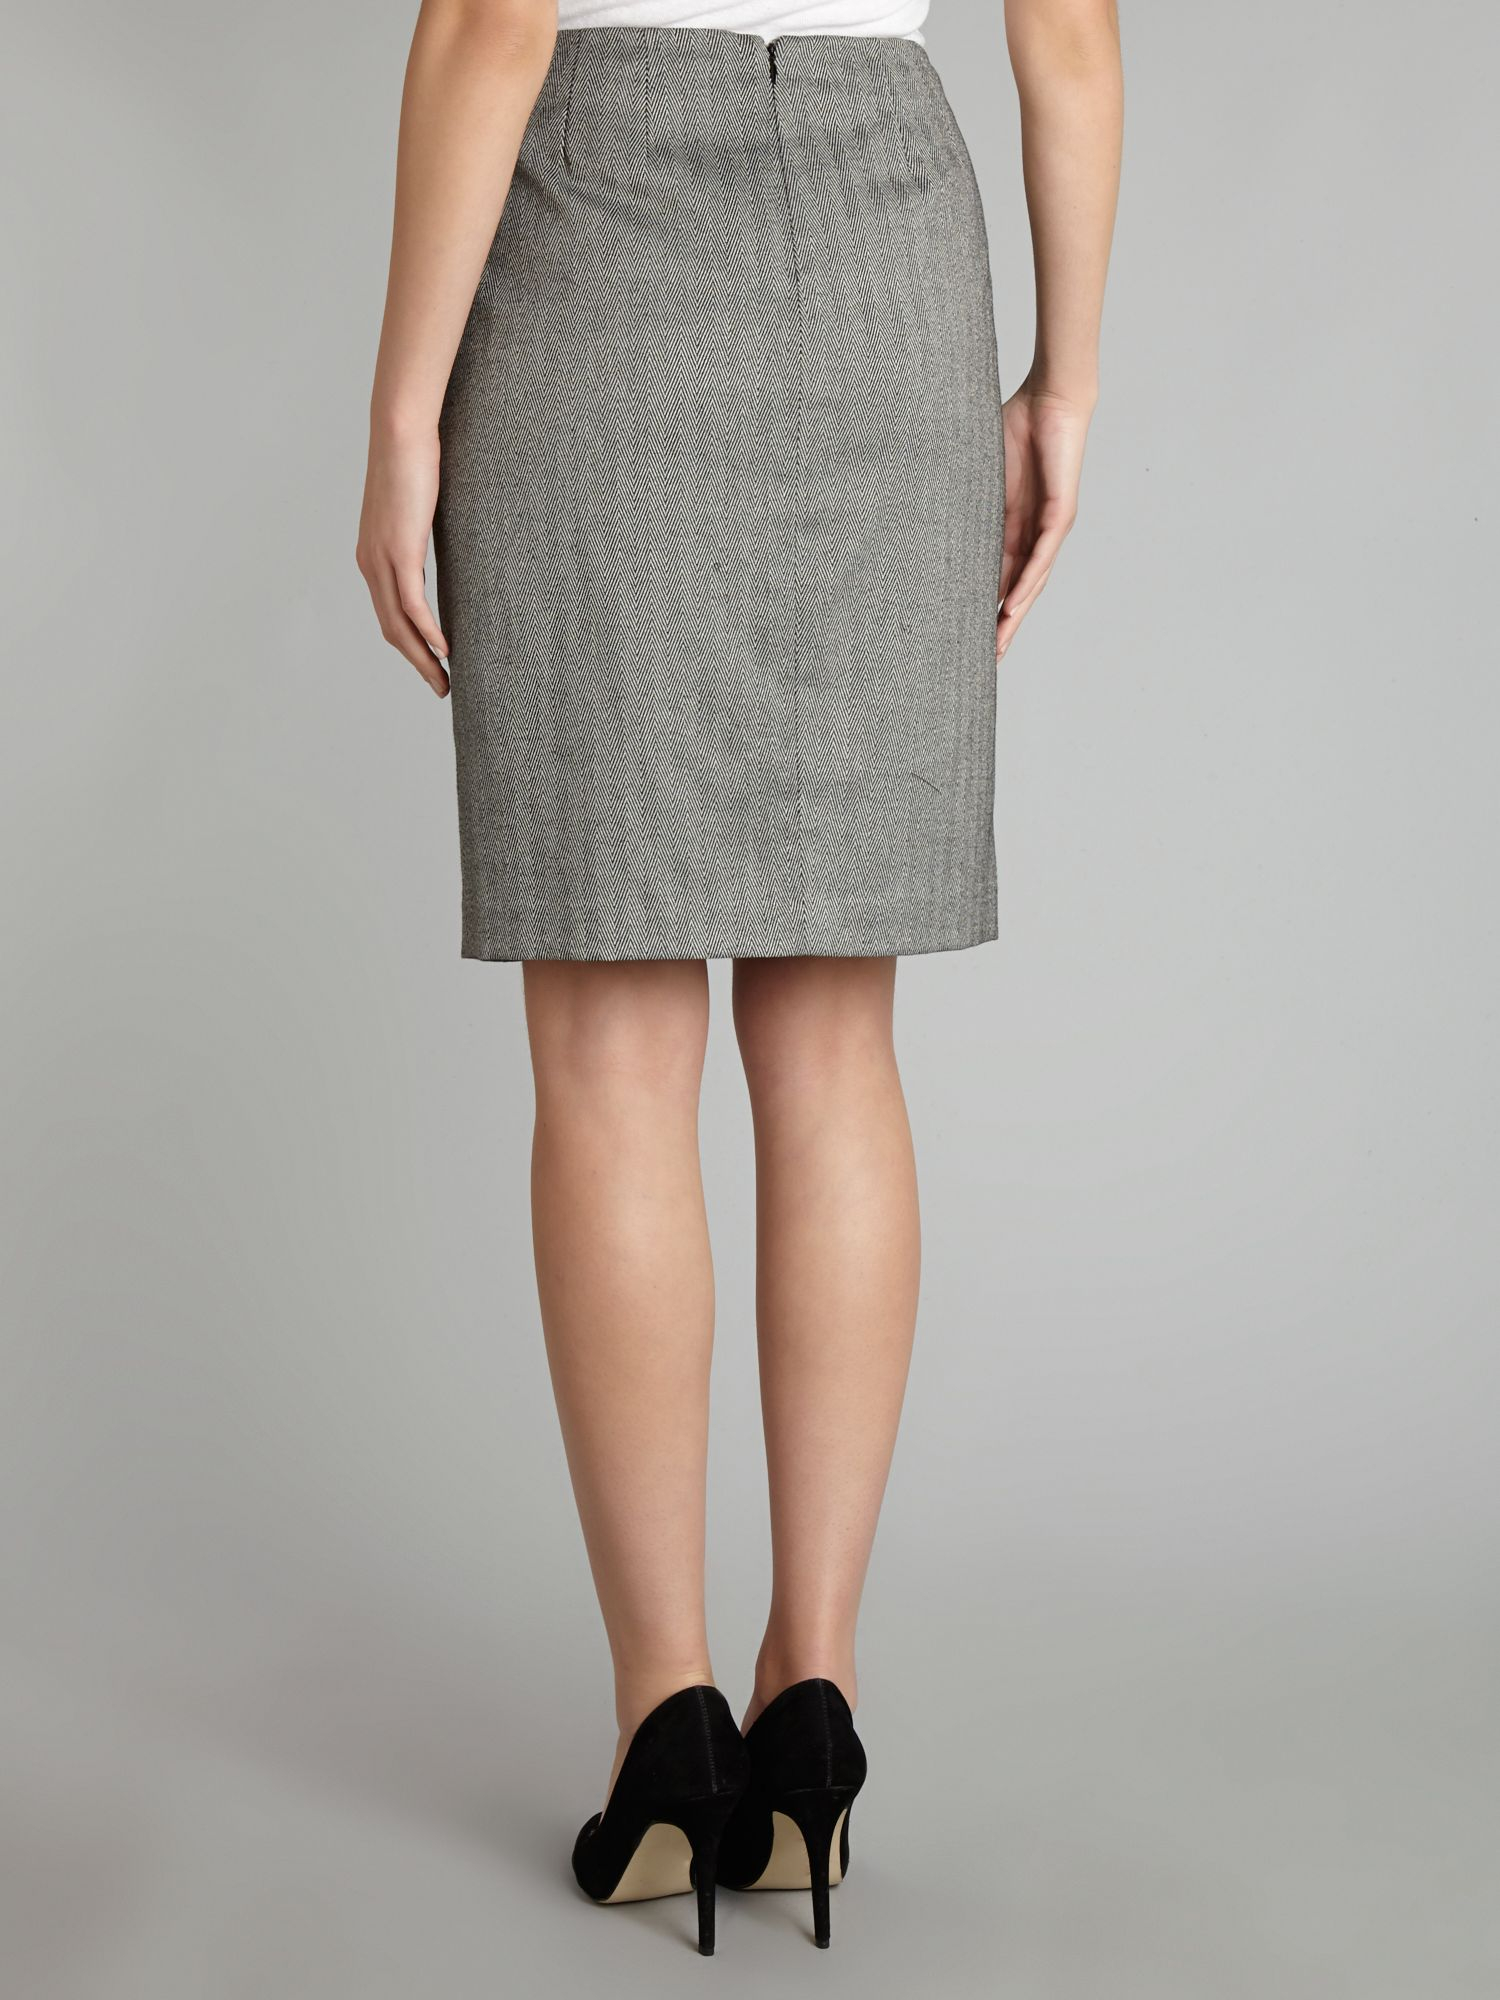 papell lace trim pencil skirt in black lyst